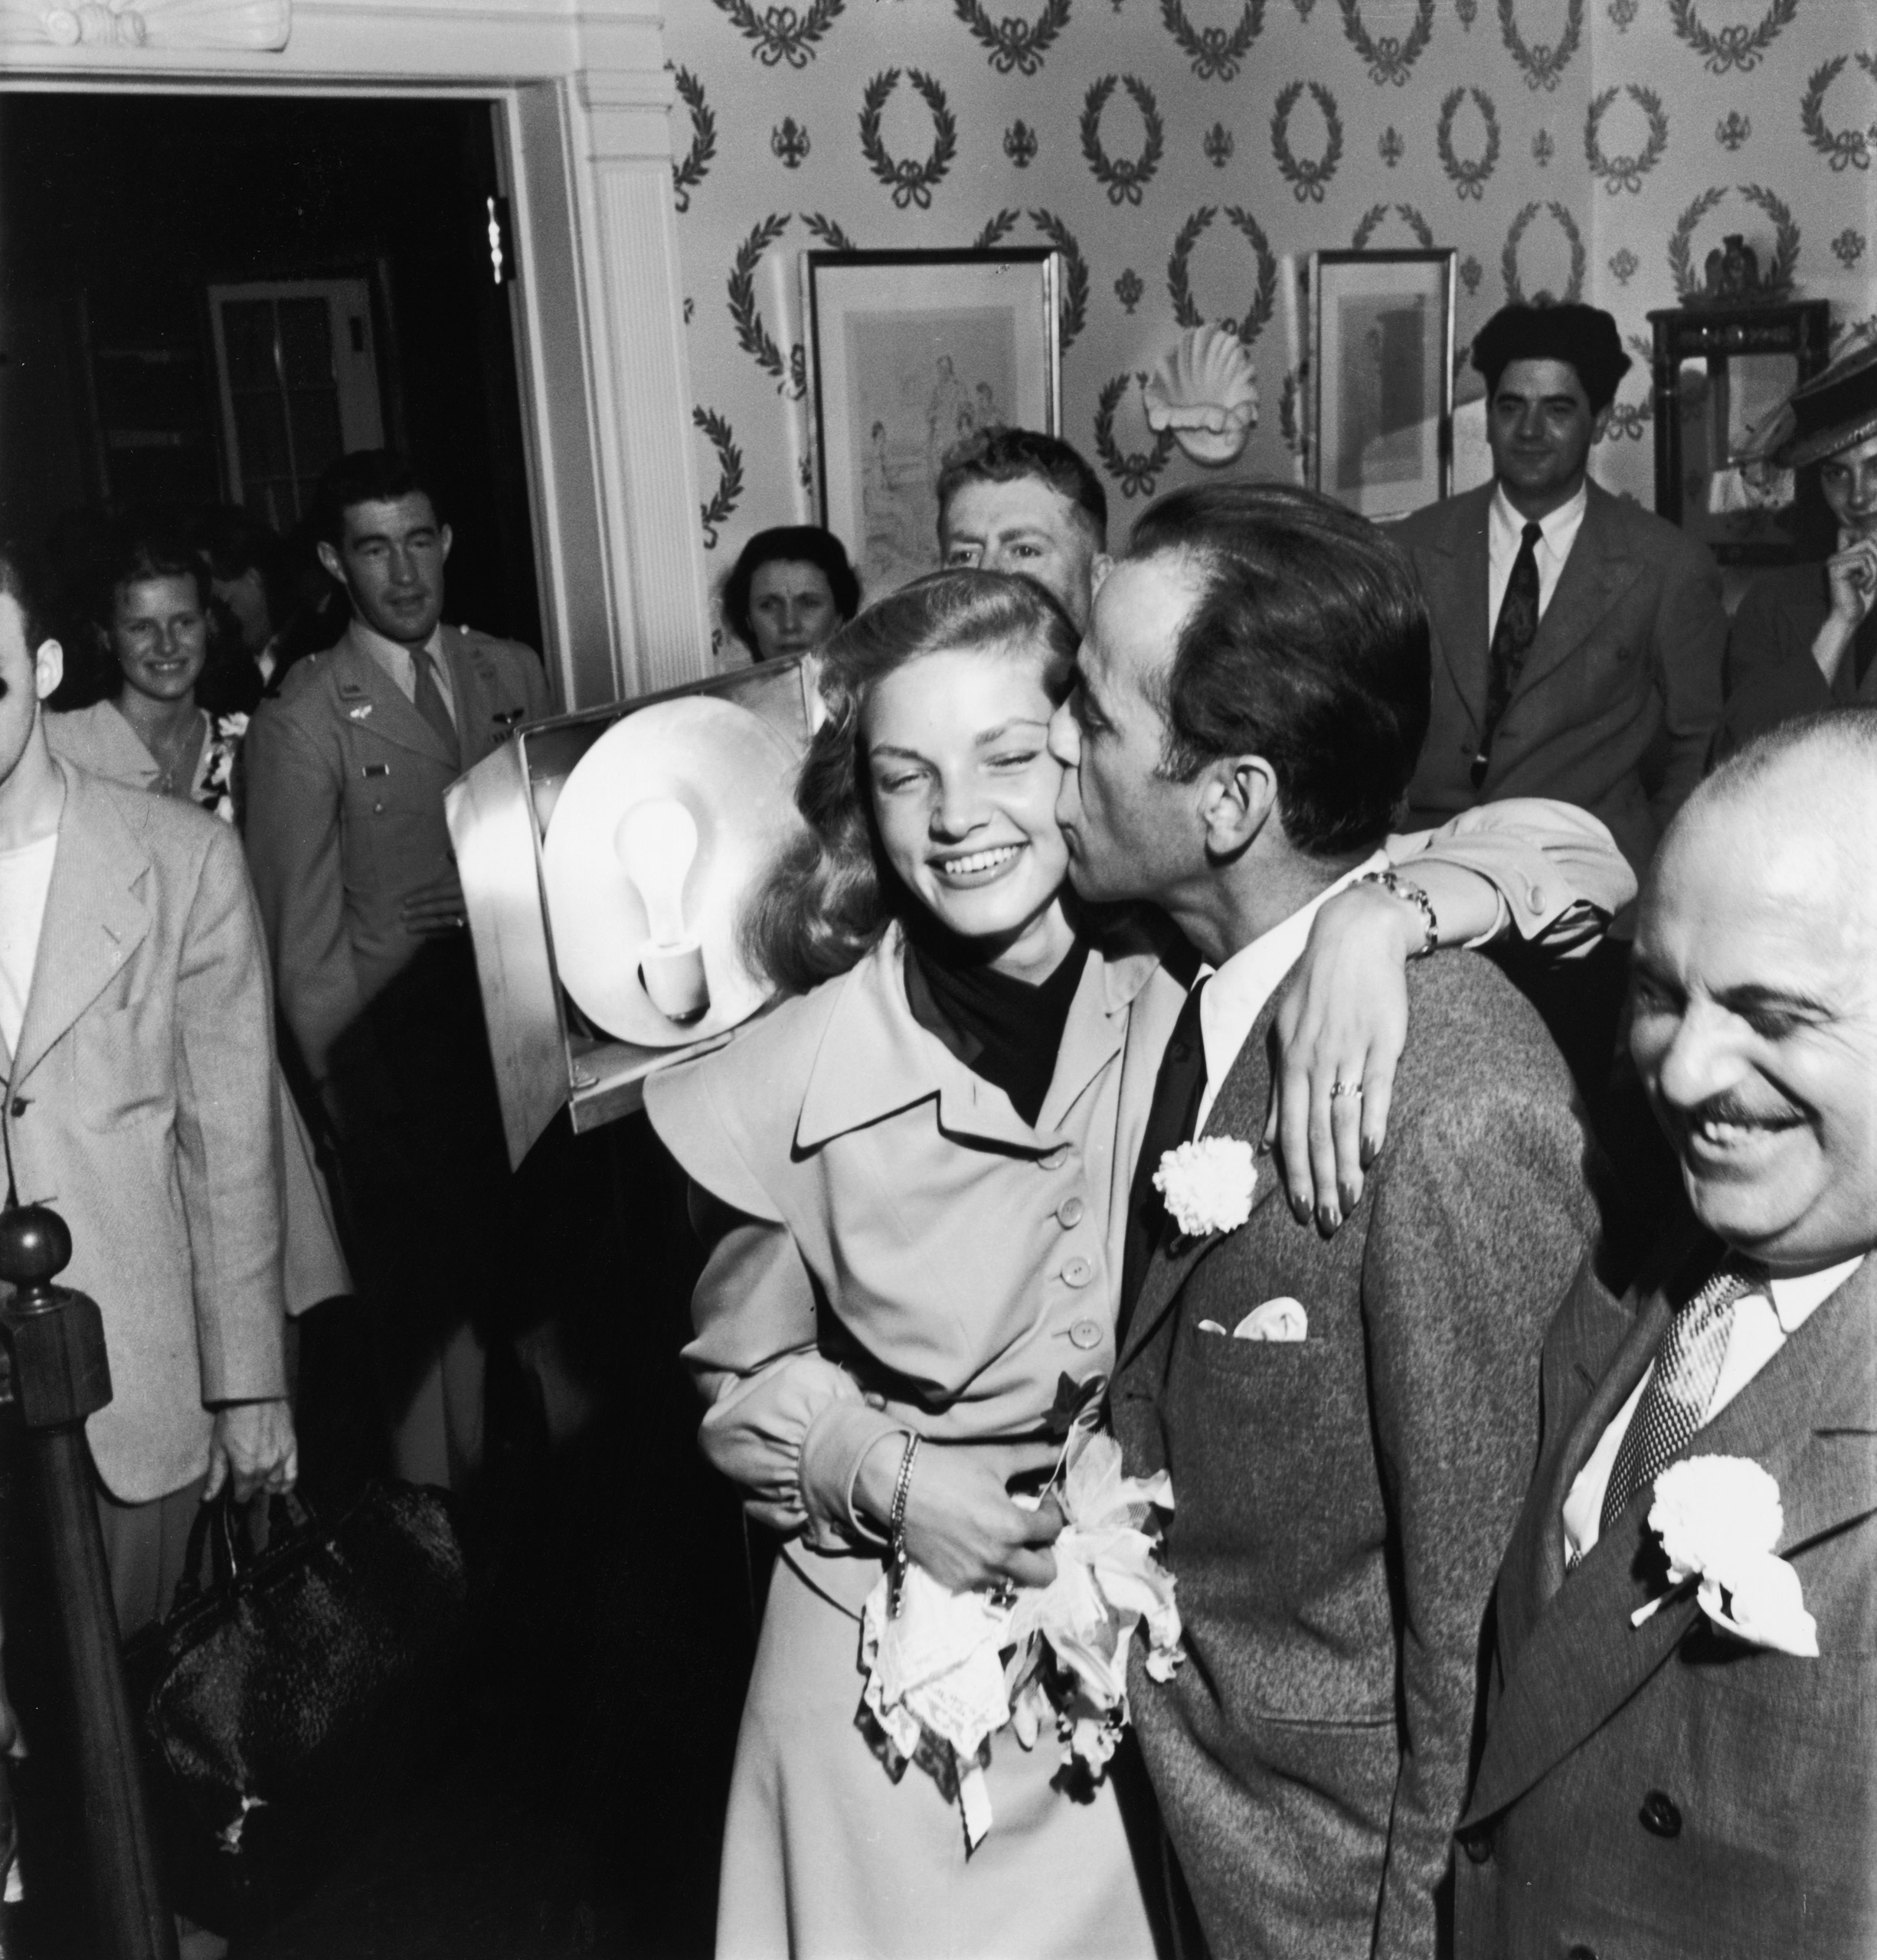 Bogart gives his bride a kiss on the cheek.